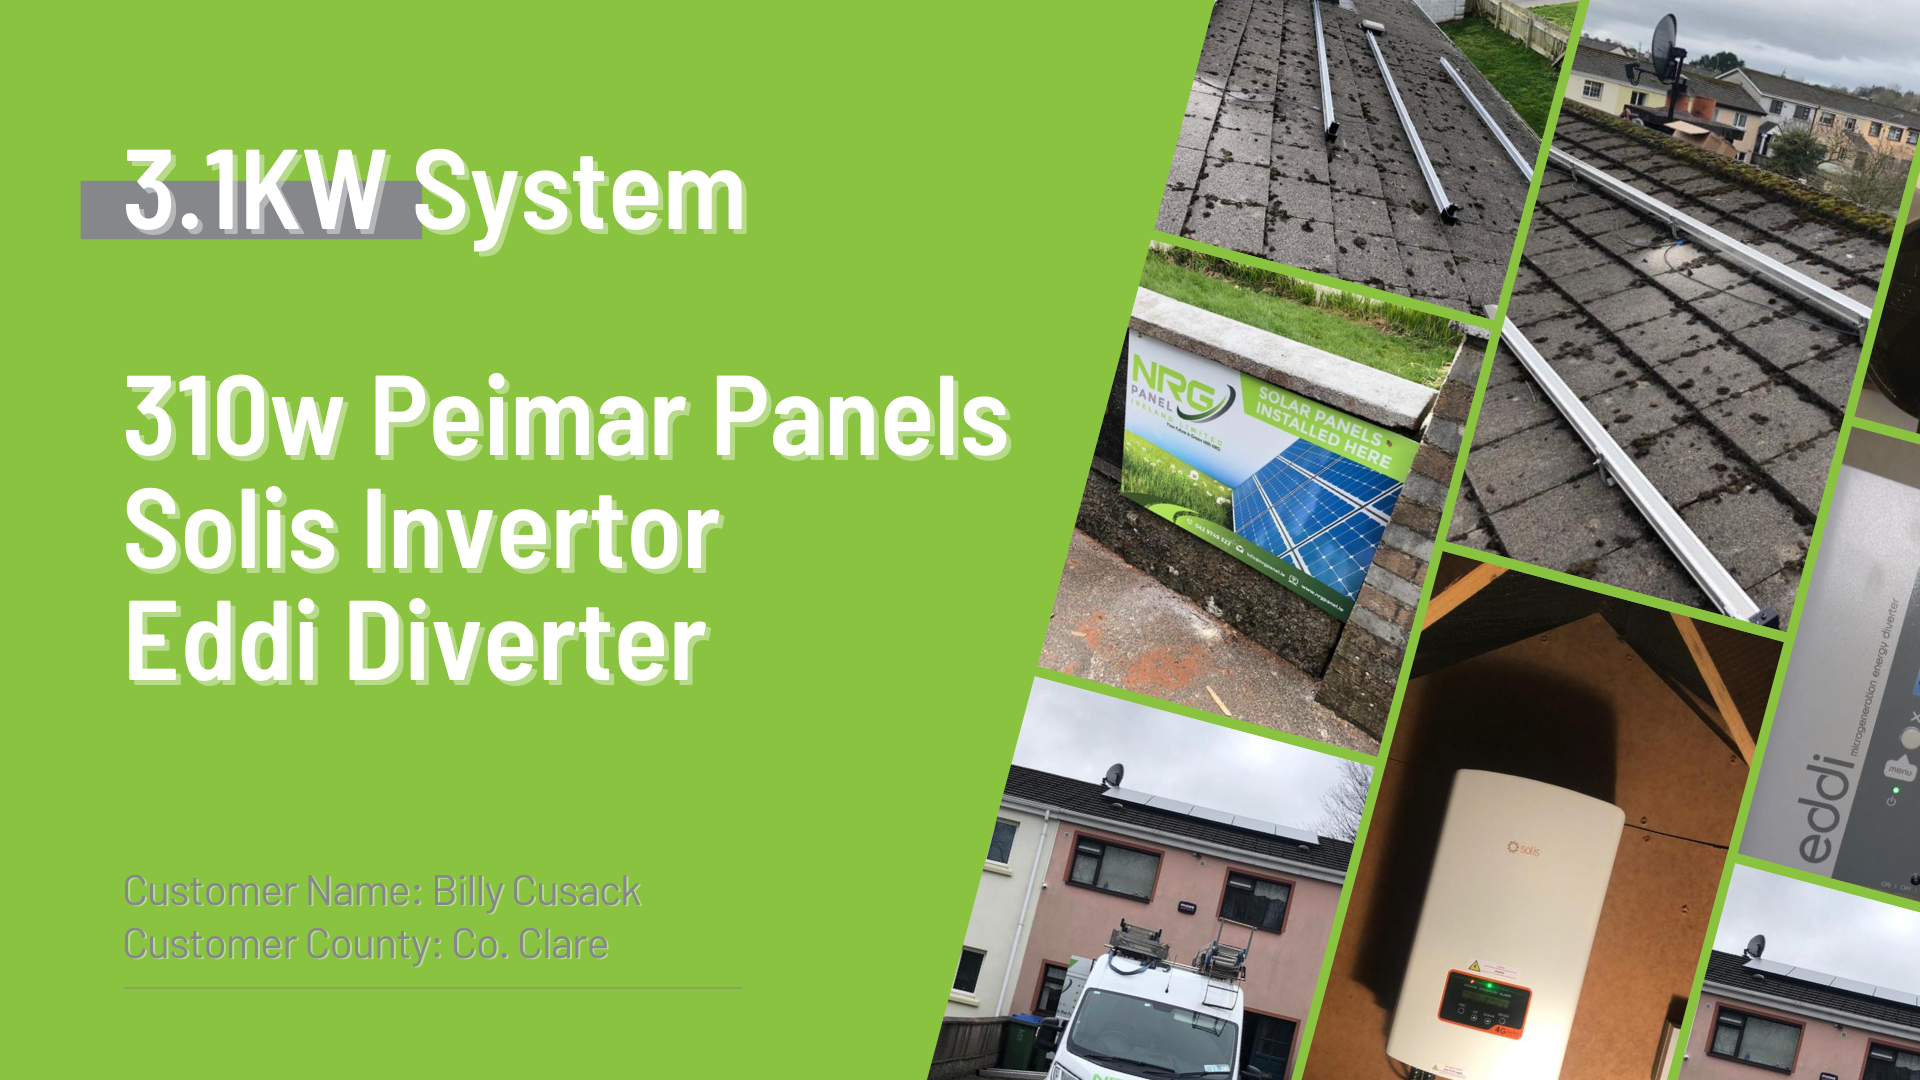 Case Study - Solar Panel Install Co. Clare - NRG Panel - #1